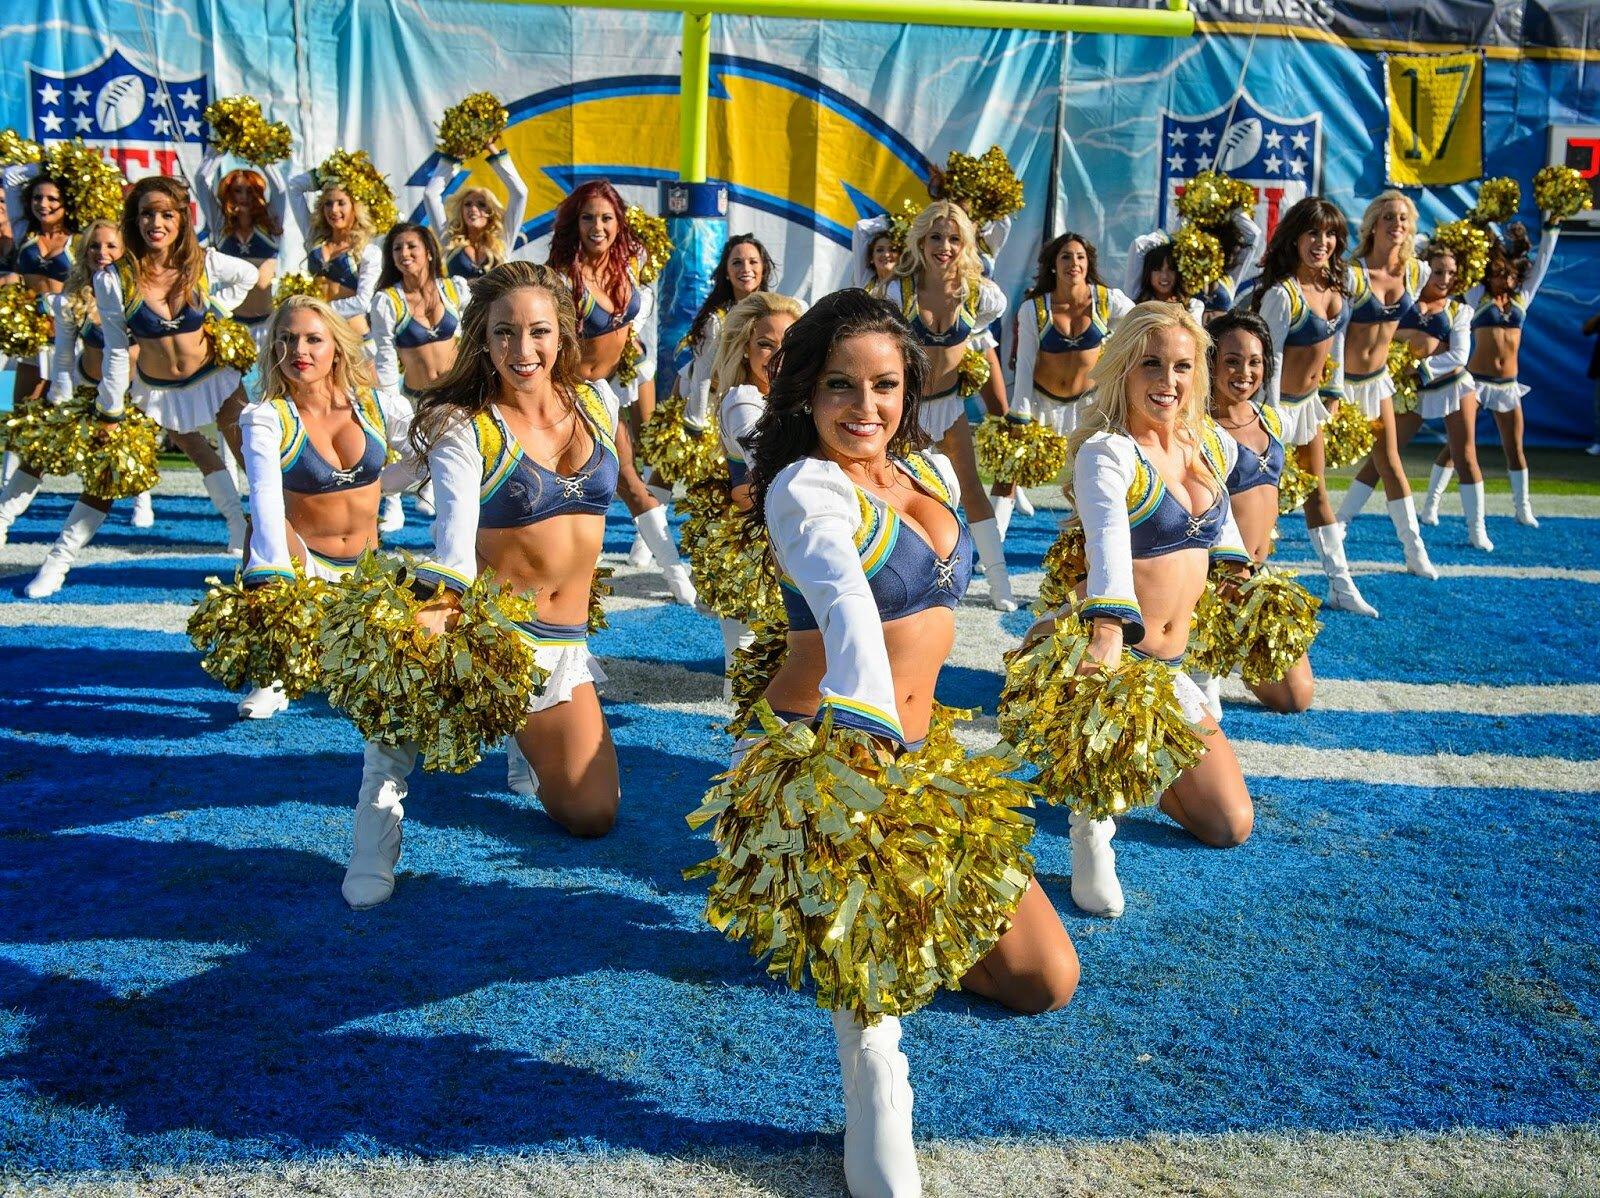 chargers-girls-cheerleaders